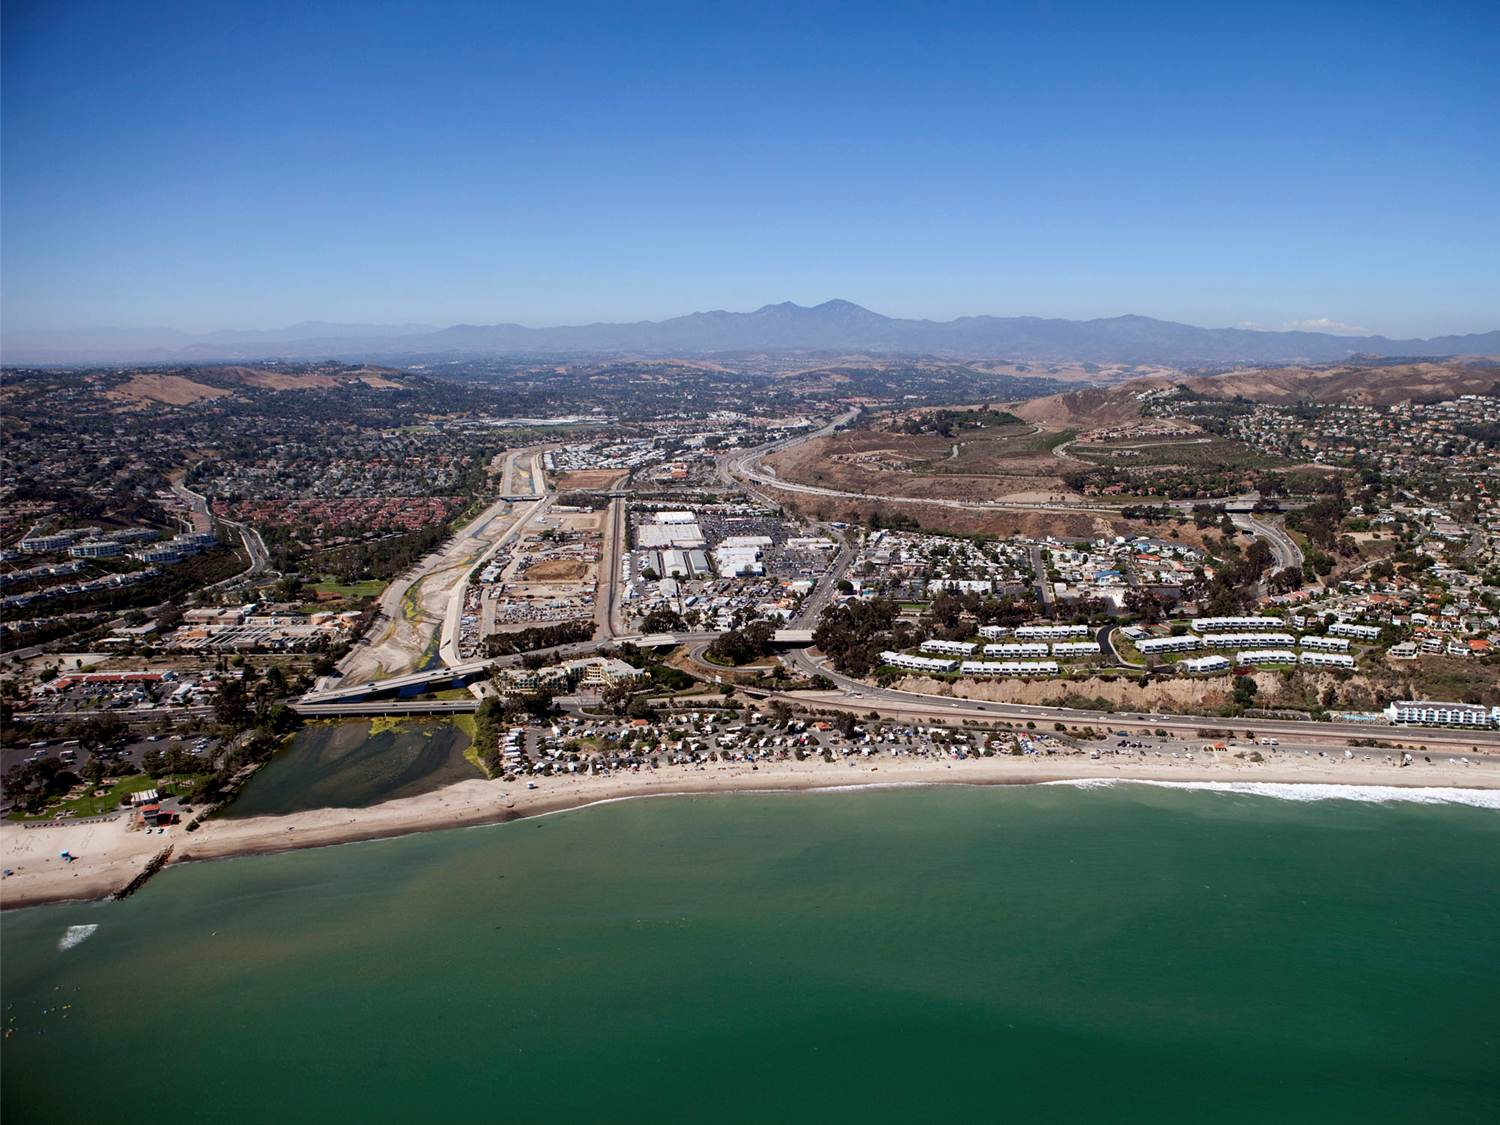 The downtown area of Capistrano Beach known as Doheny Village is the subject of a revitalization project now in the planning stages. Photo courtesy of ROMA Design Group/Tom Lamb Photography